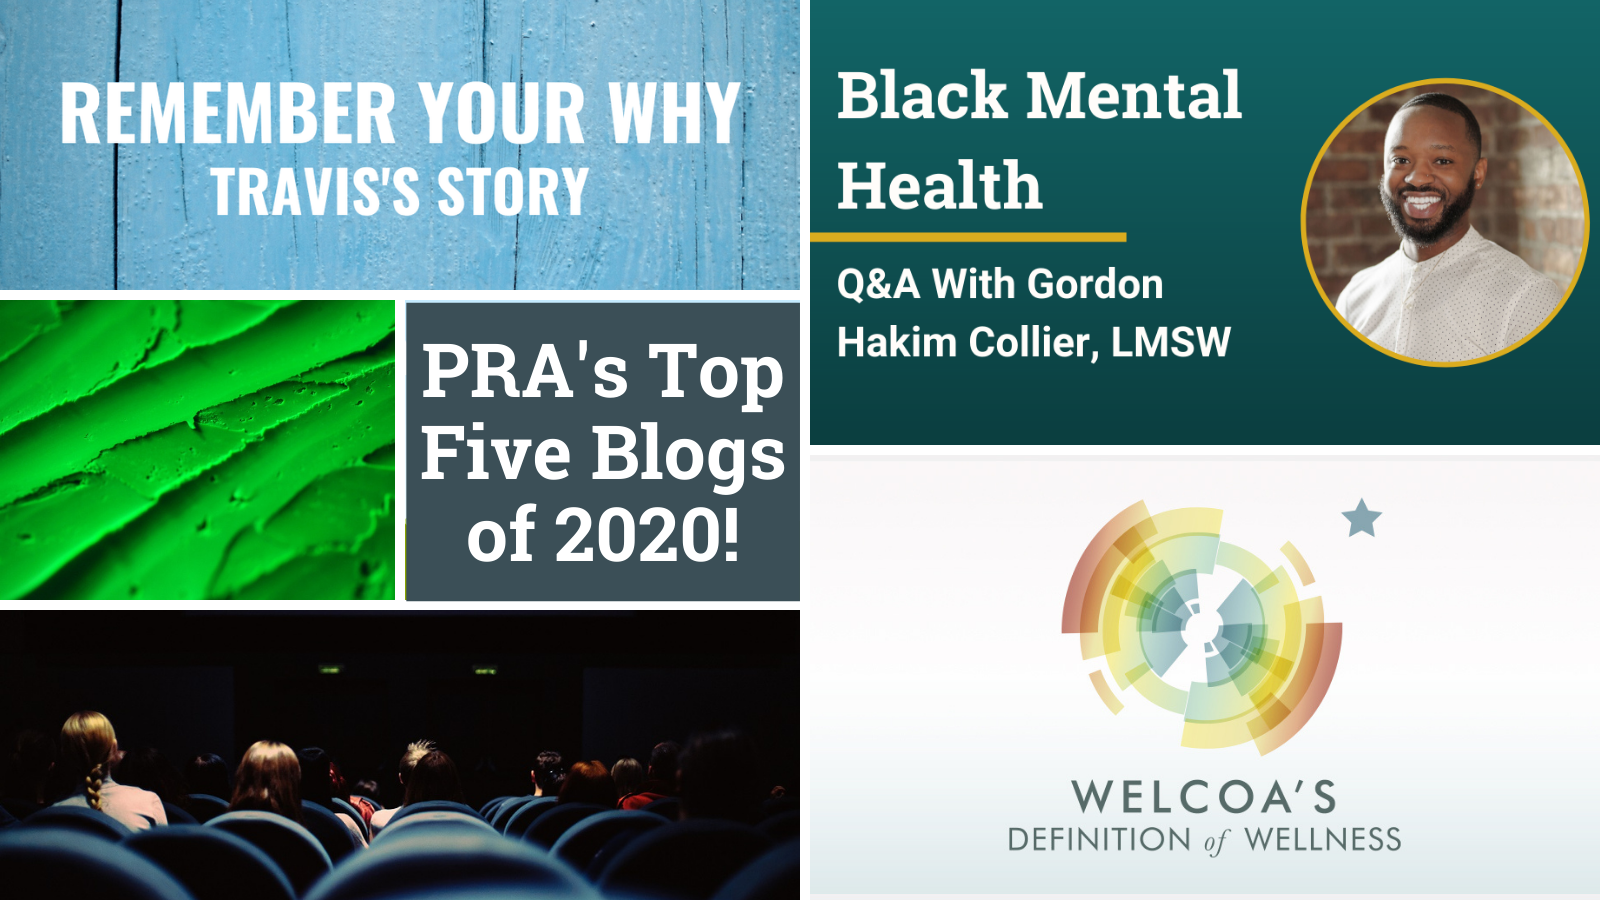 PRA's Top Five Blogs of 2020!